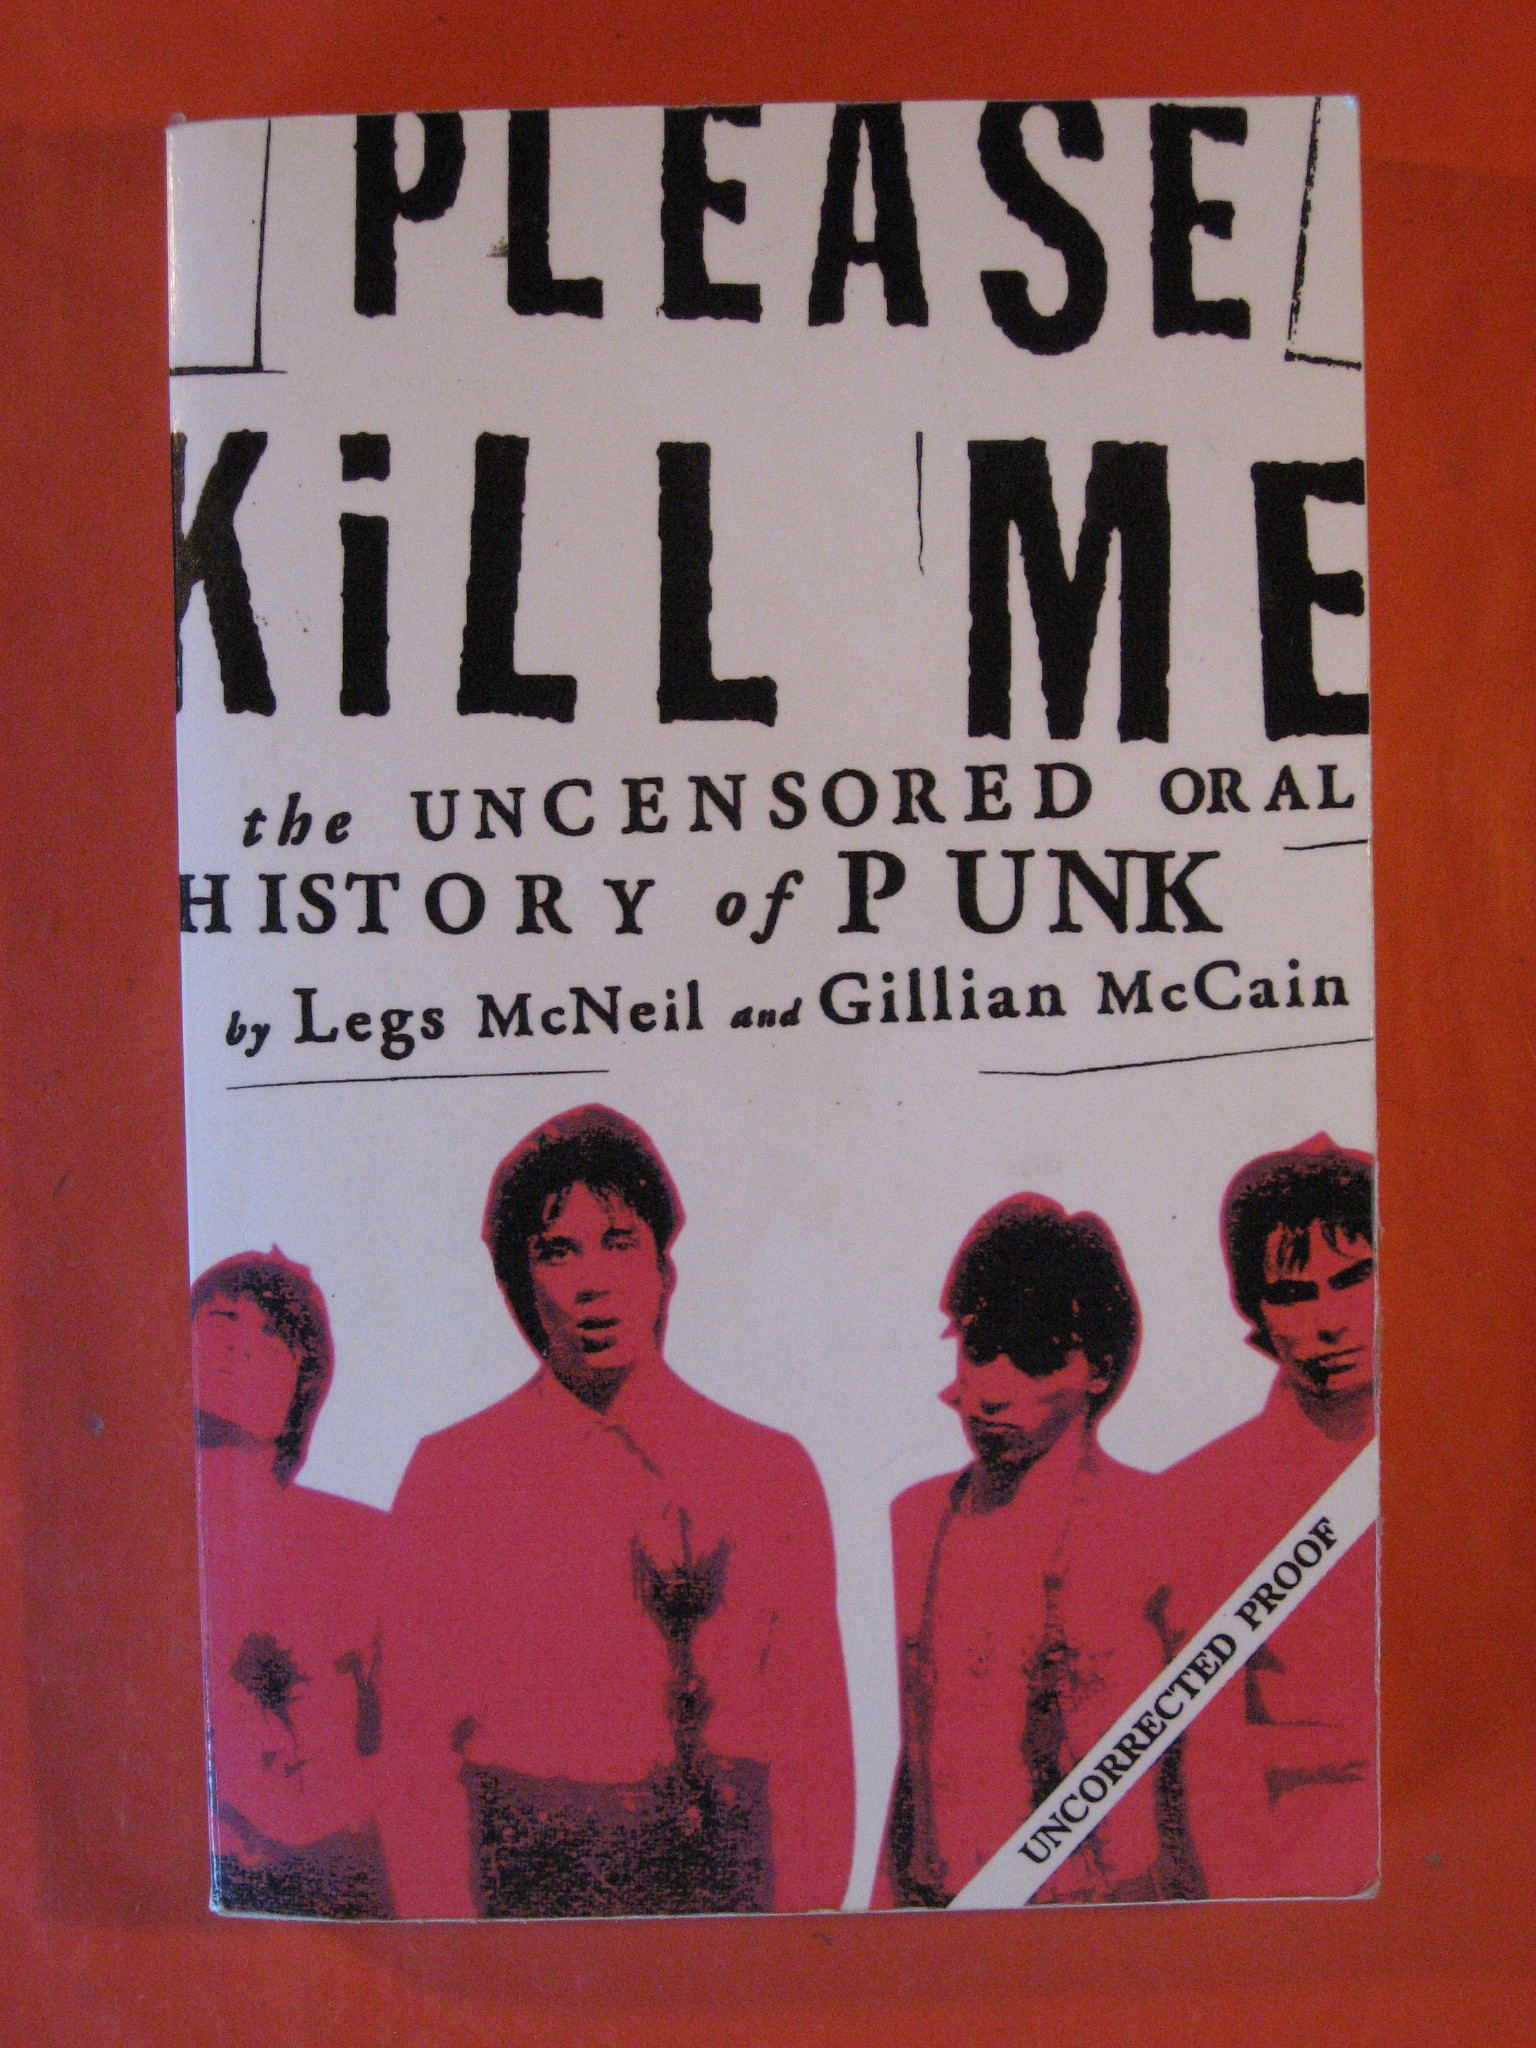 Please Kill Me: The Uncensored Oral History of Punk, McCain, Gillian; McNeil, Legs